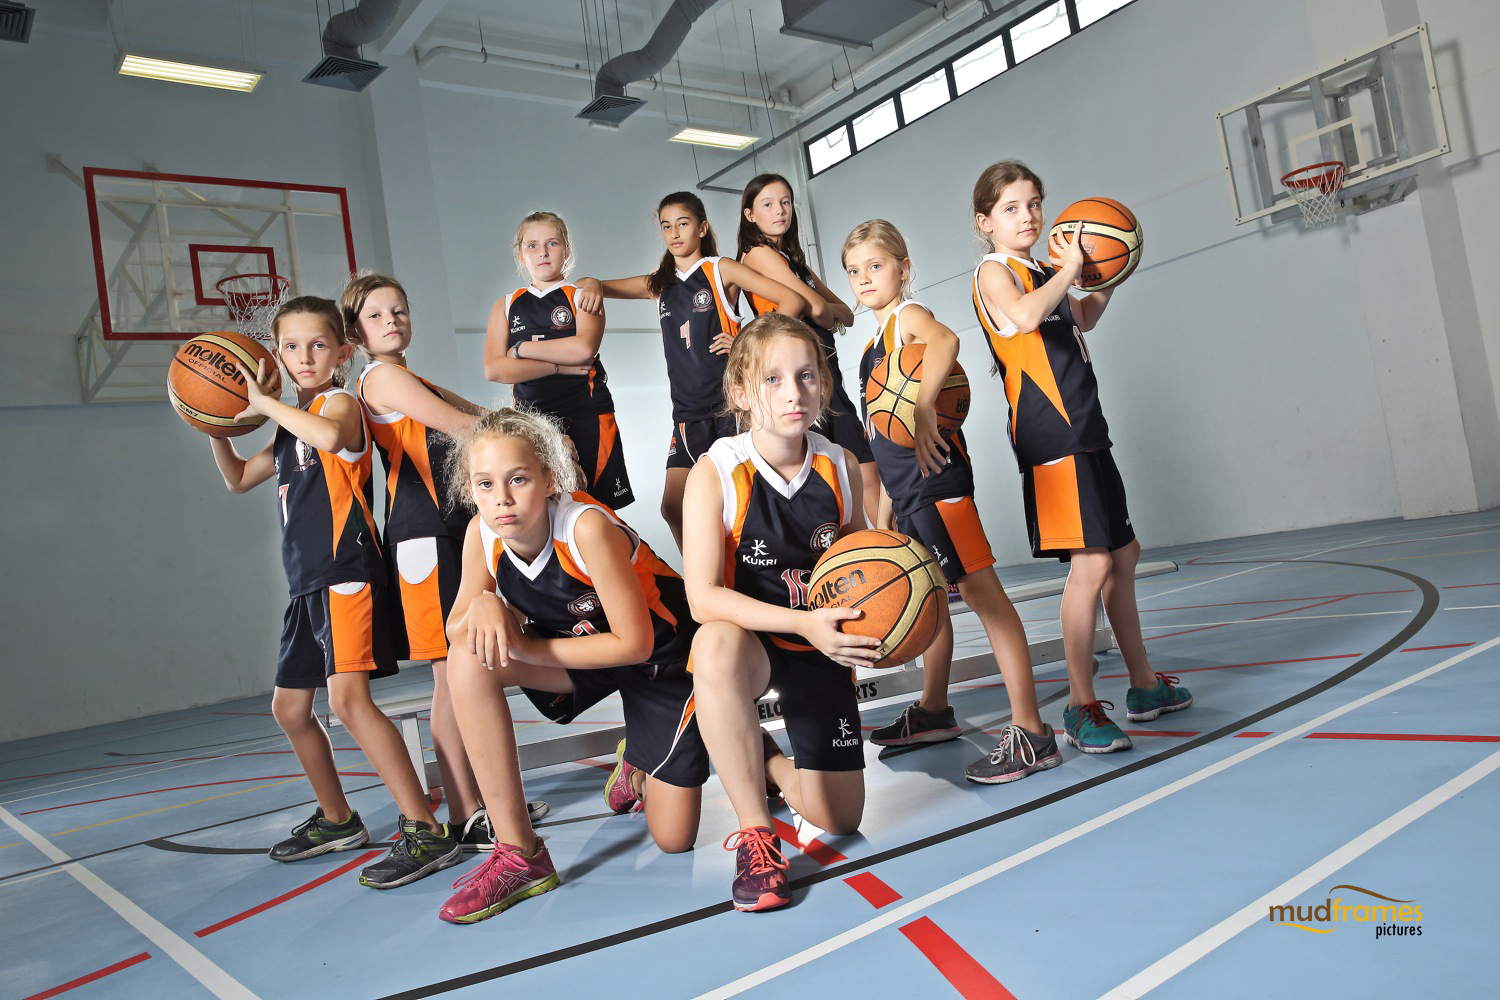 The British International School Under 11 Girls Basketball Team